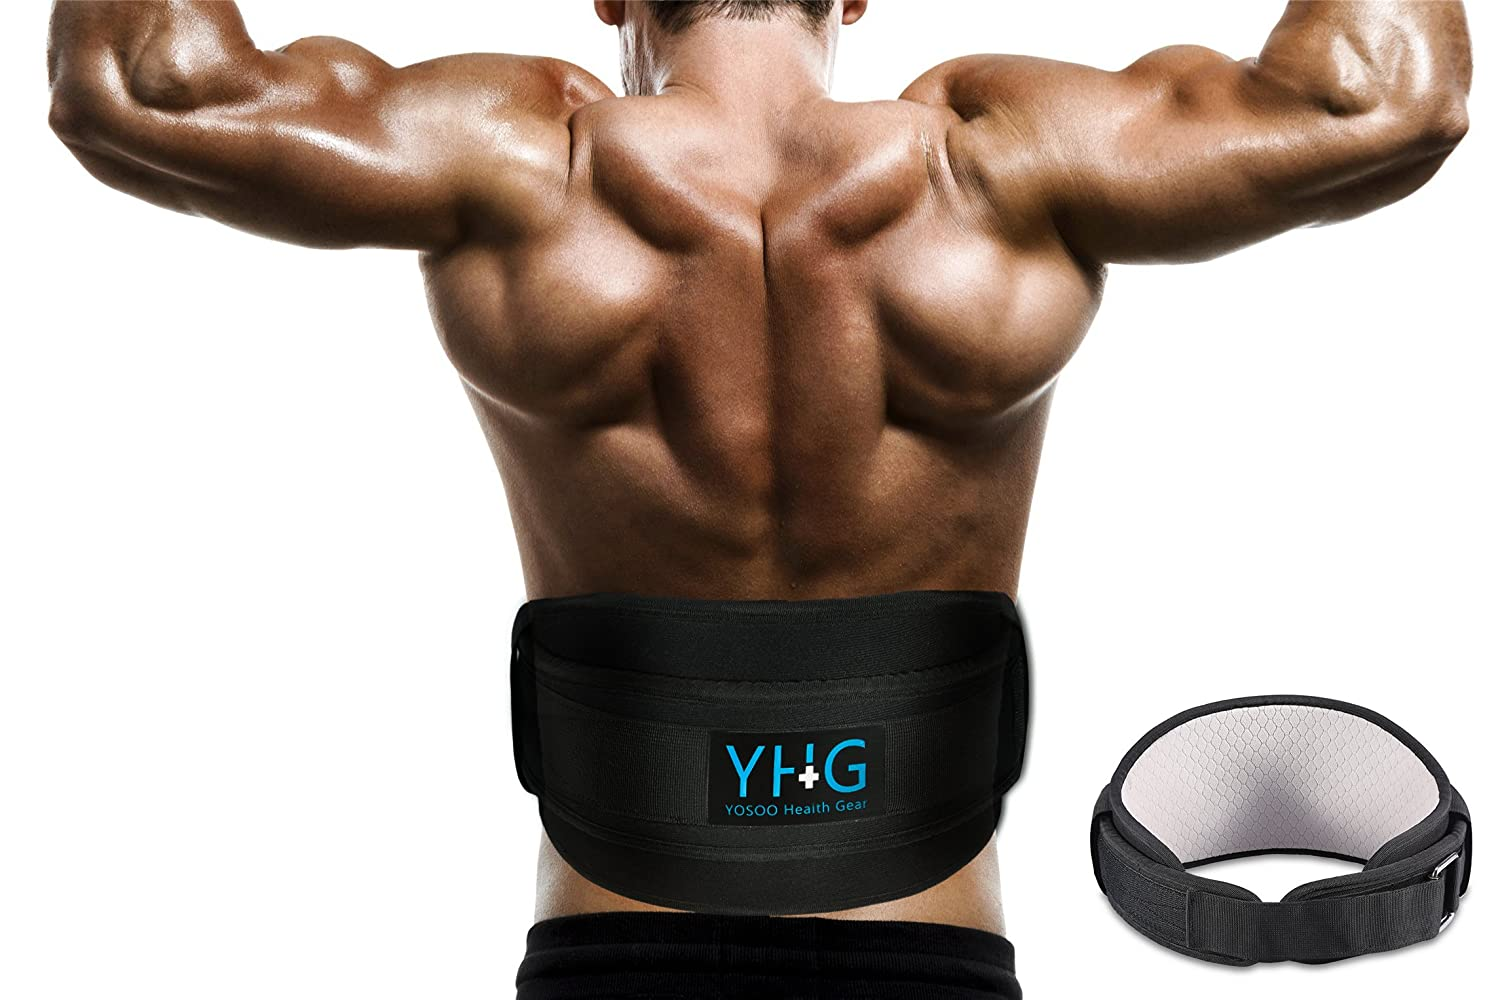 Yosoo Health Gear Weight Lifting Belt Great for Squats, Crossfit, Lunges, Deadlift, Thrusters – Best Back Belt Support for Men Women – 6 Inch Black Comfortable Adjustable Lumbar Belt Support